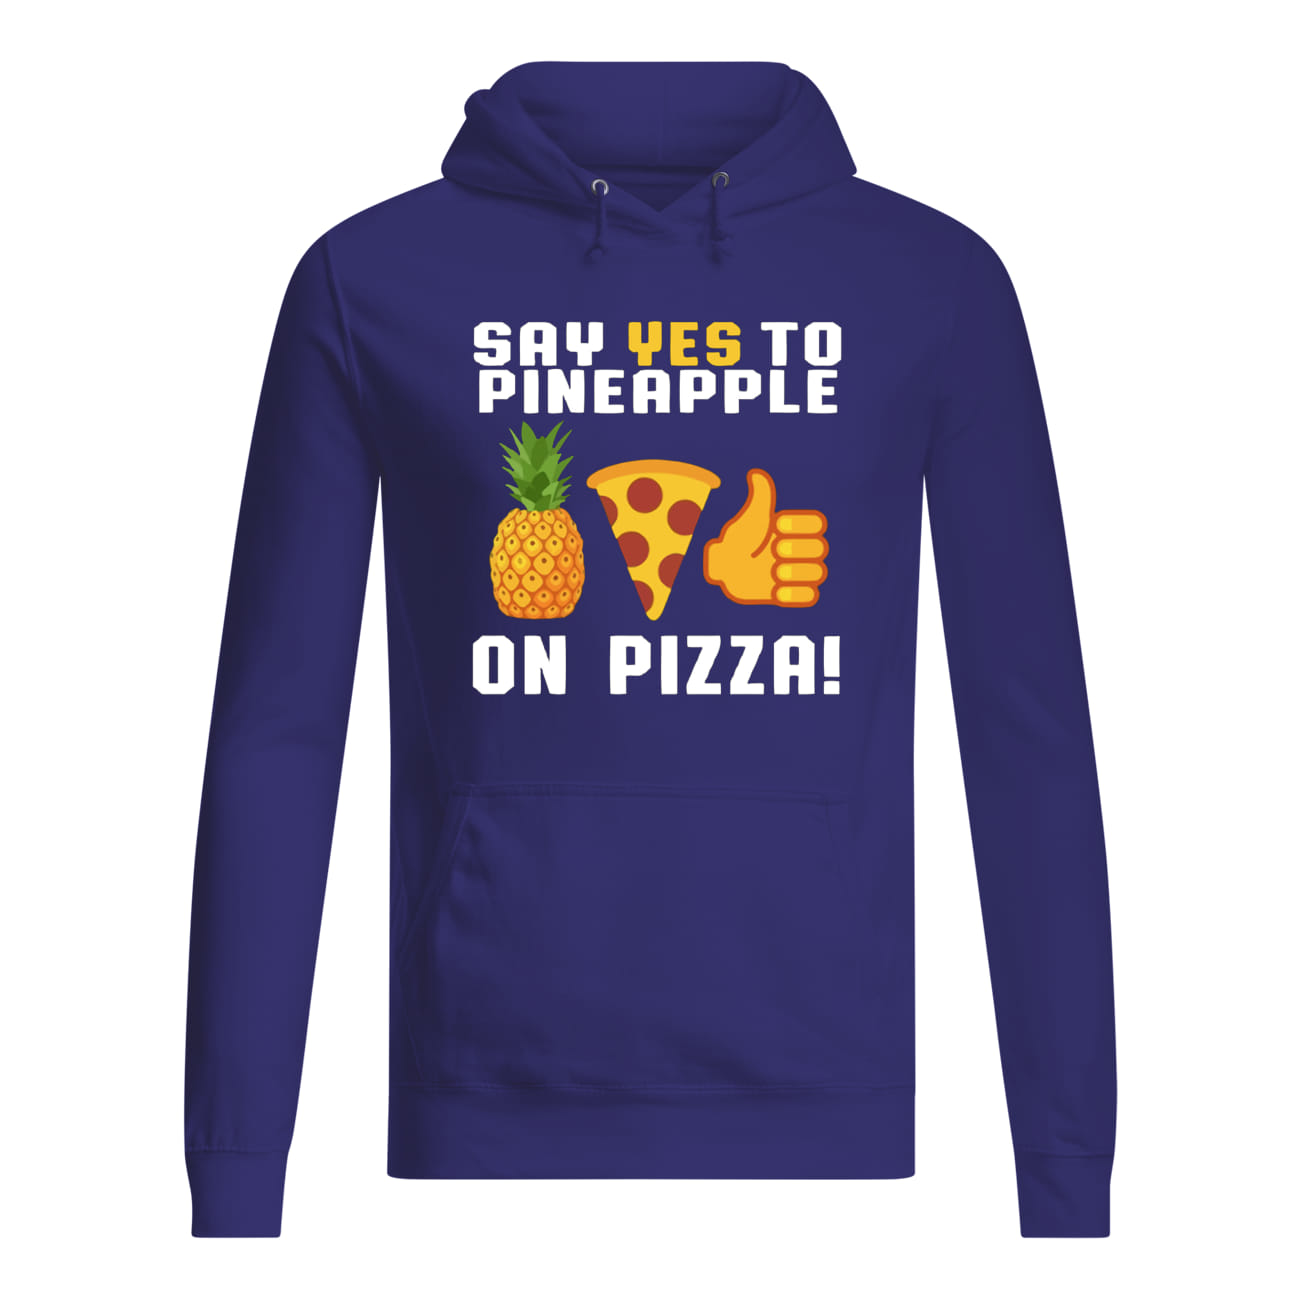 Say yes to pineapple on pizza hoodie